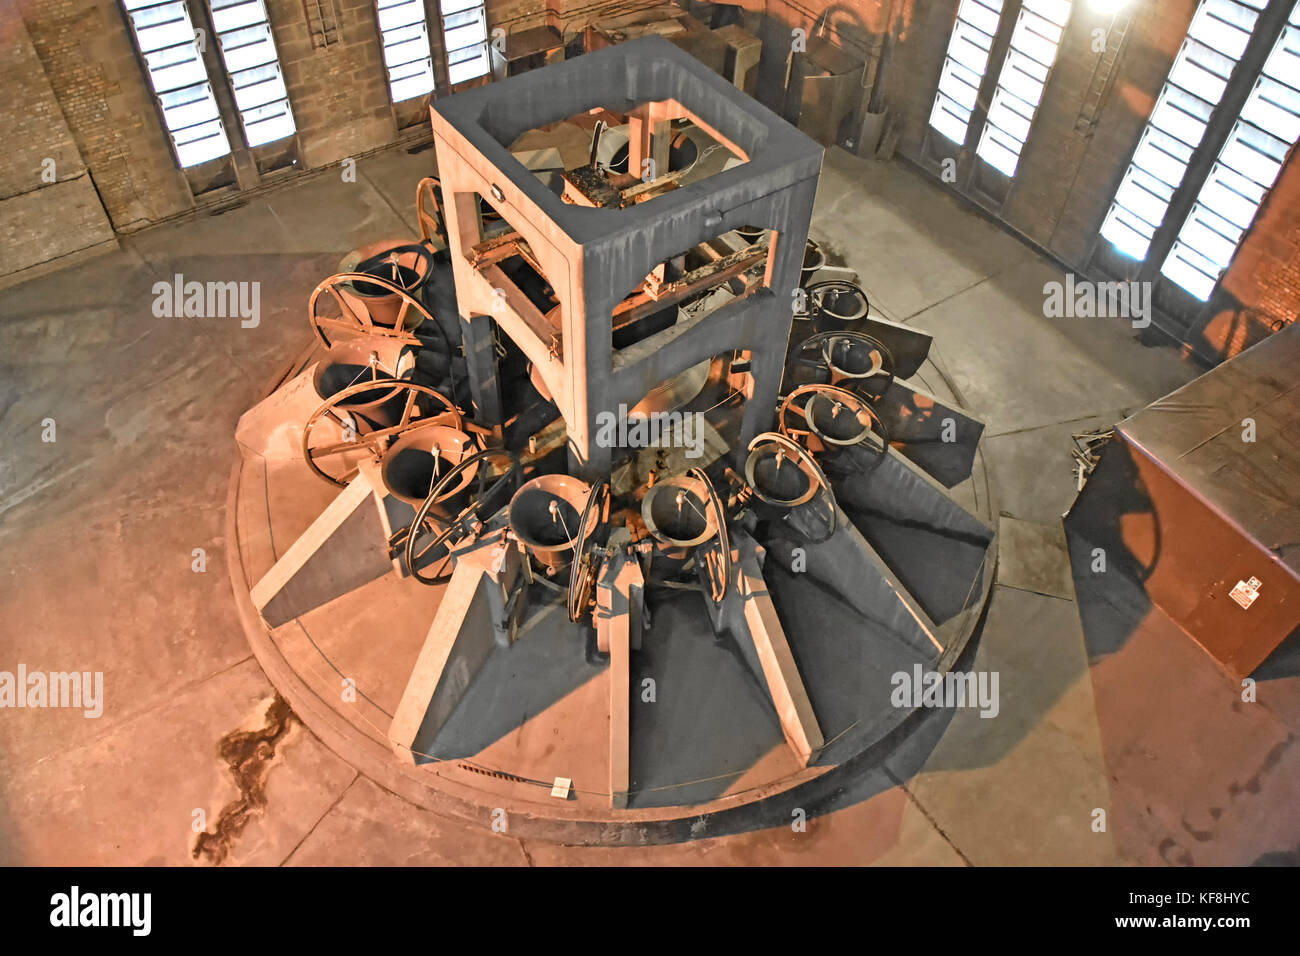 Liverpool Anglican cathedral peel of bells viewed inside floodlit bell chamber as part of the public access to viewing - Stock Image